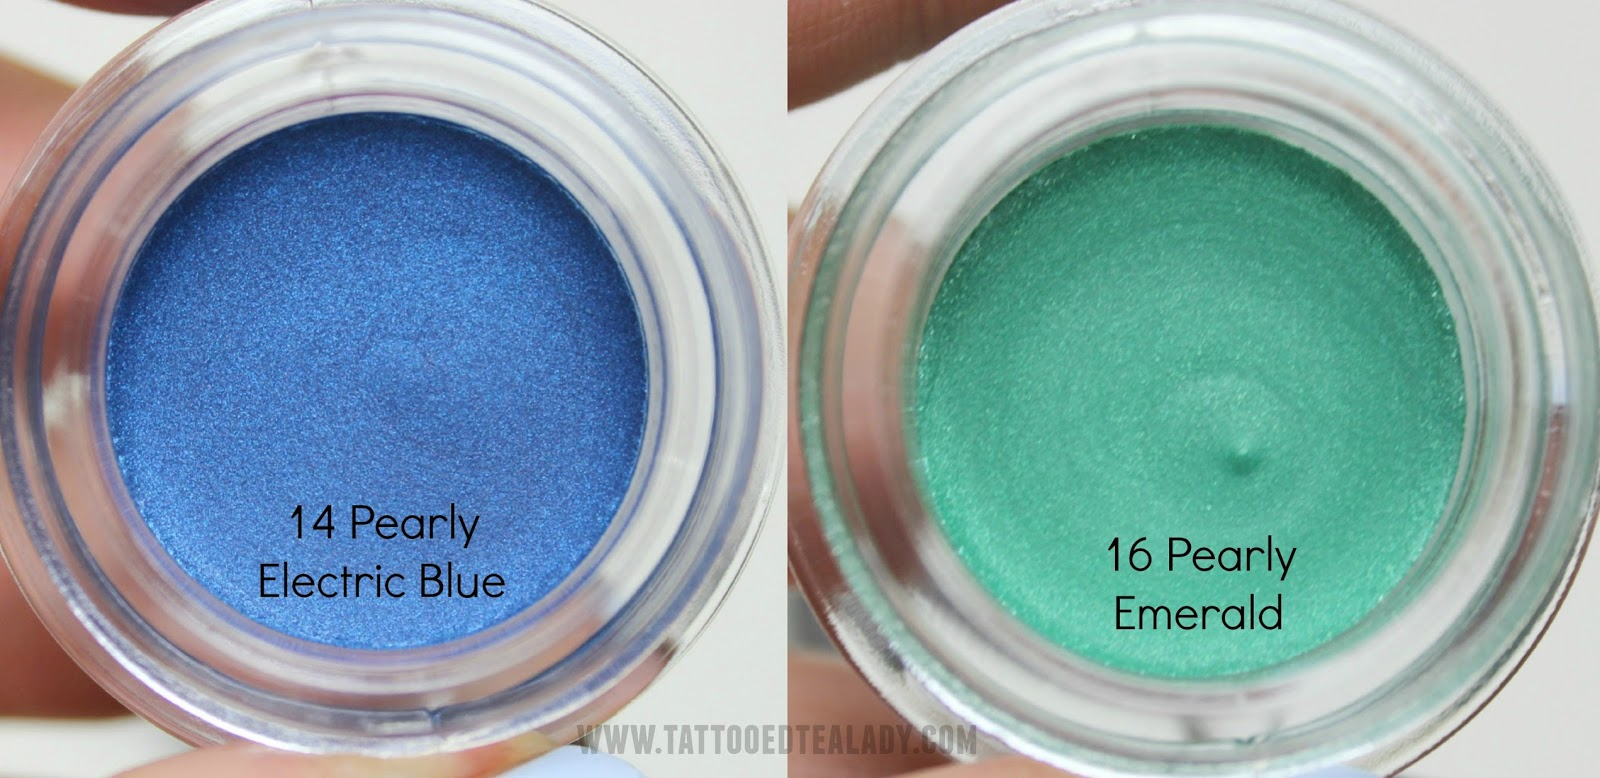 A picture of KIKO Cream Crush Eyeshadow in 14 Pearly Electric Blue and 16 Pearly Emerald